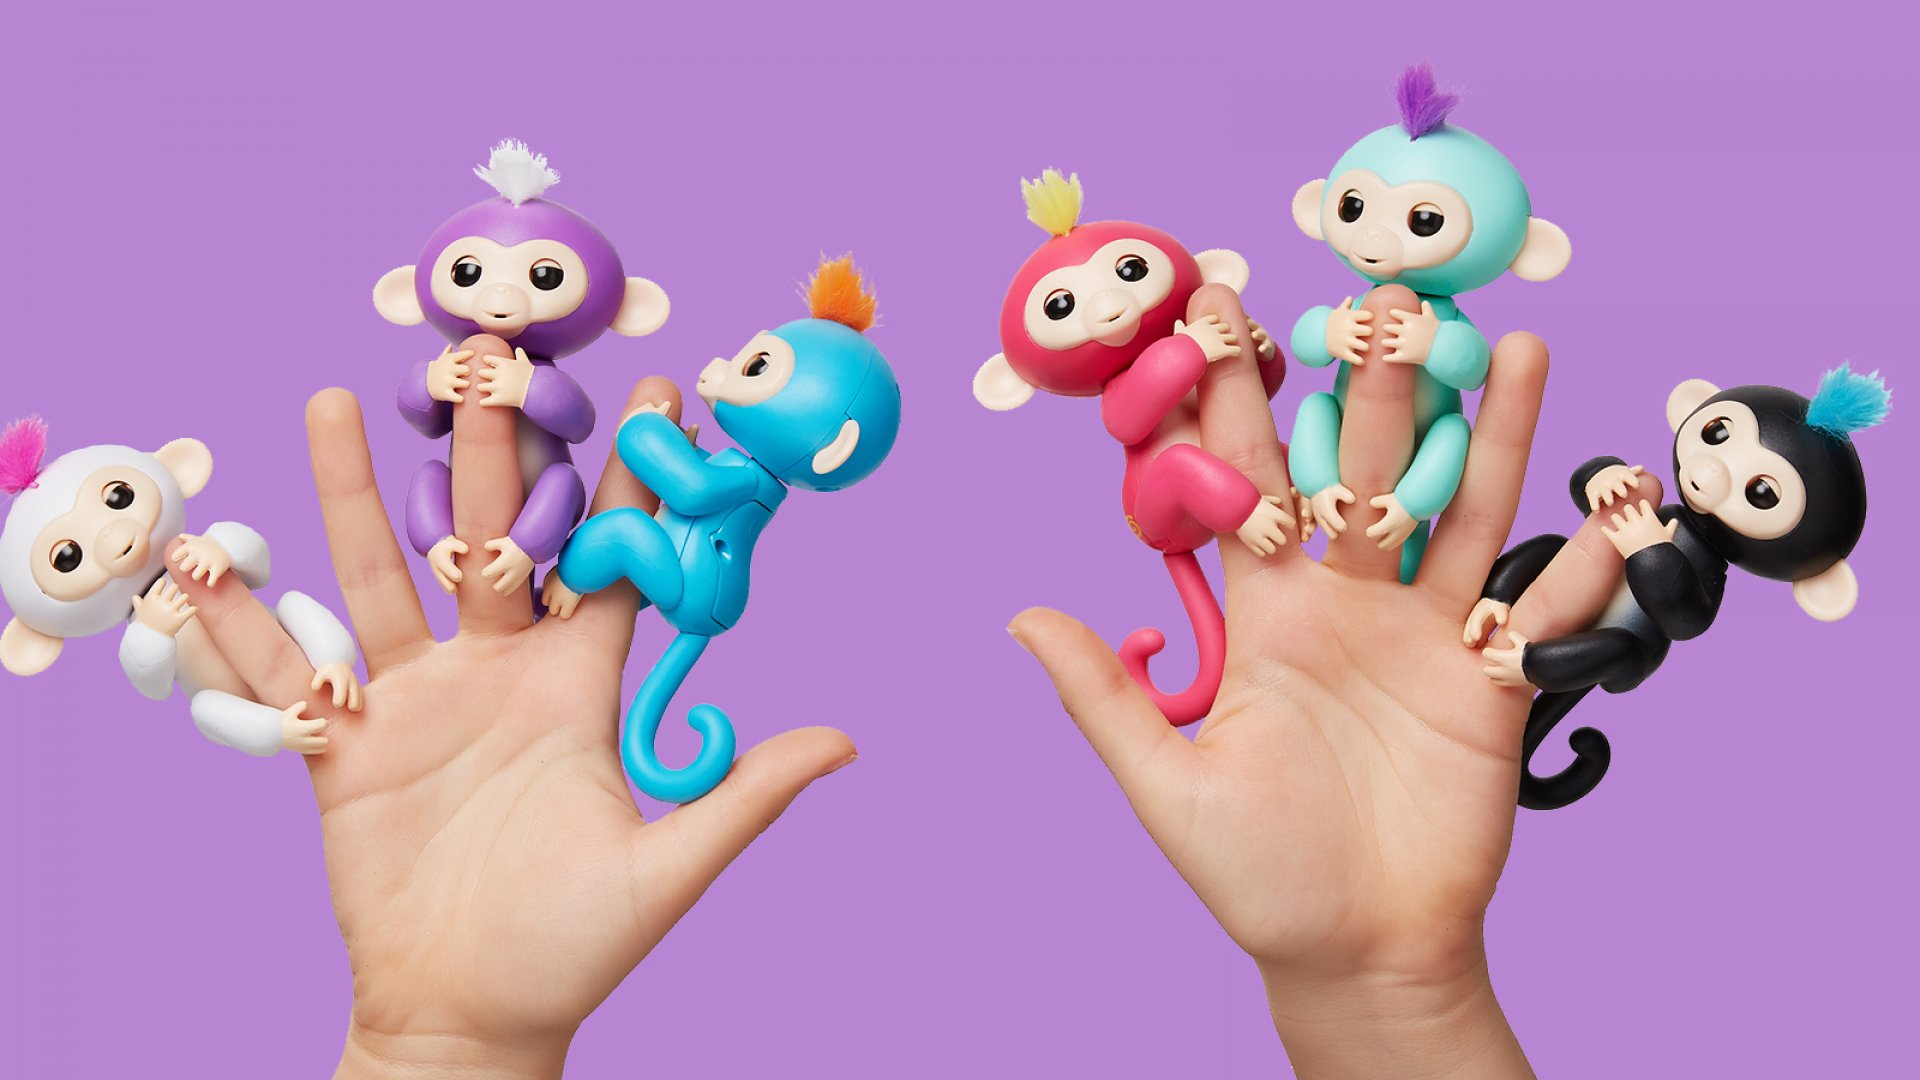 The Fingerling, by WowWee, is this year's hot new toy.